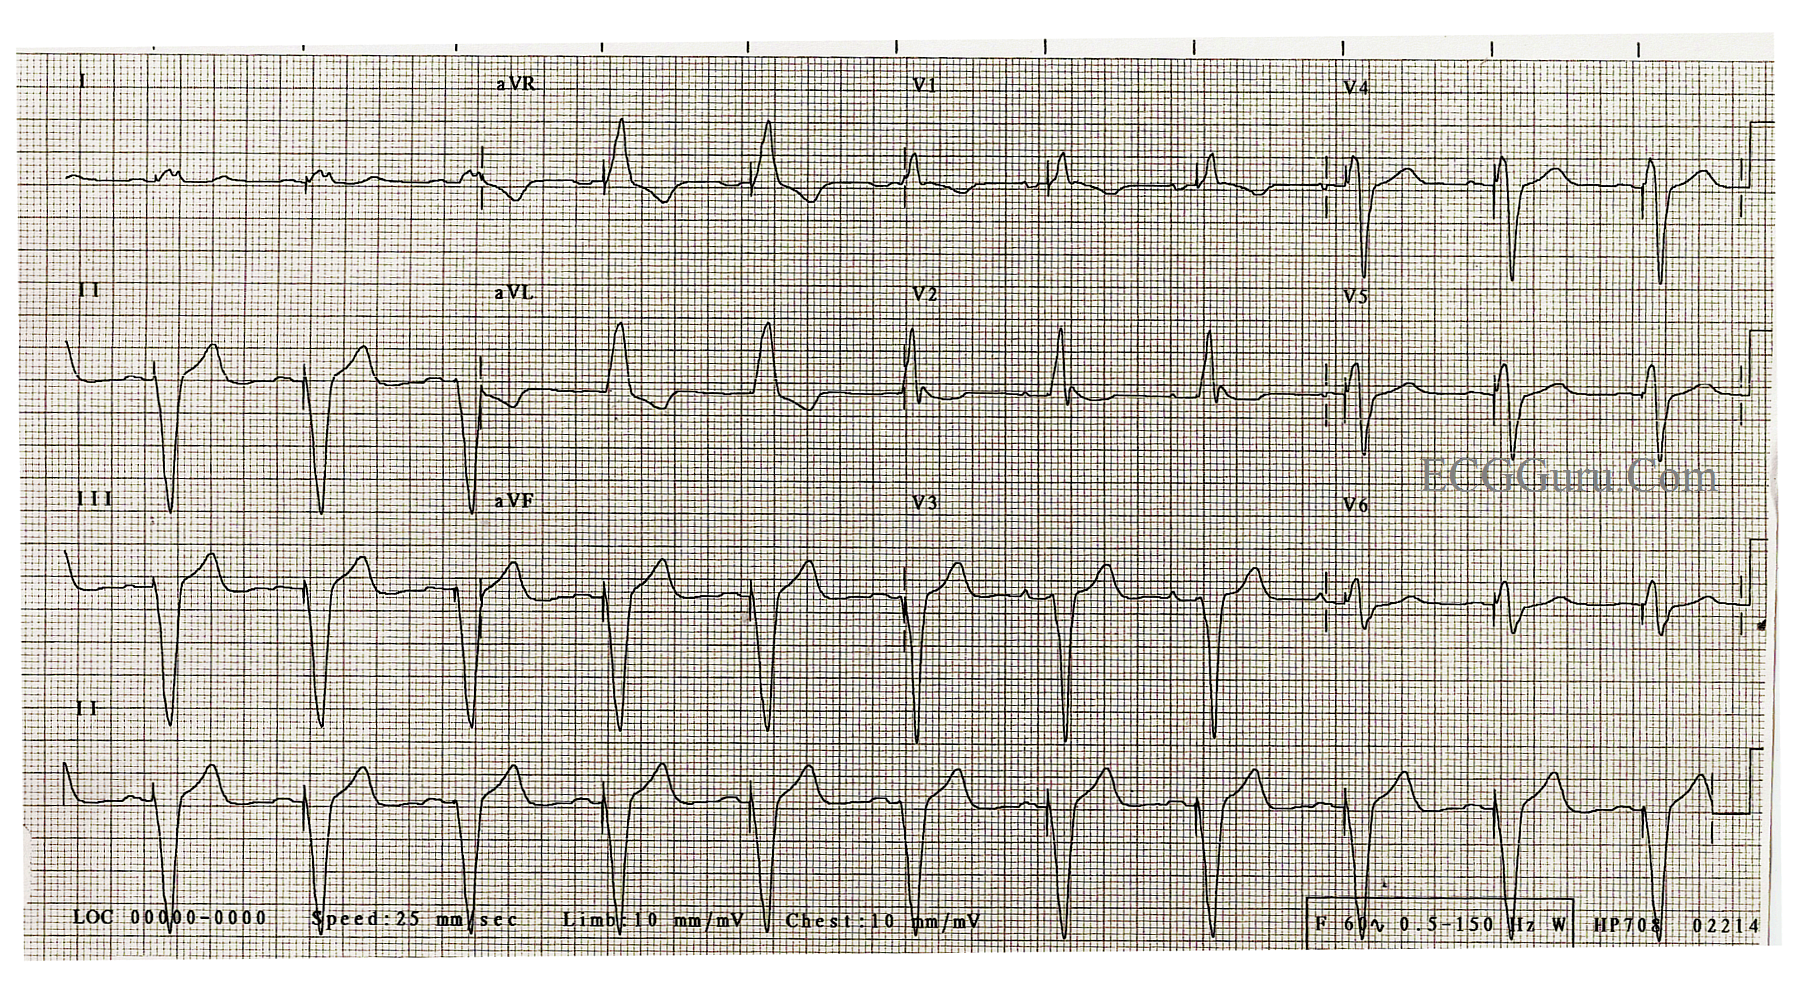 Pacemaker Rhythm Right Ventricular Pacing Triggered By